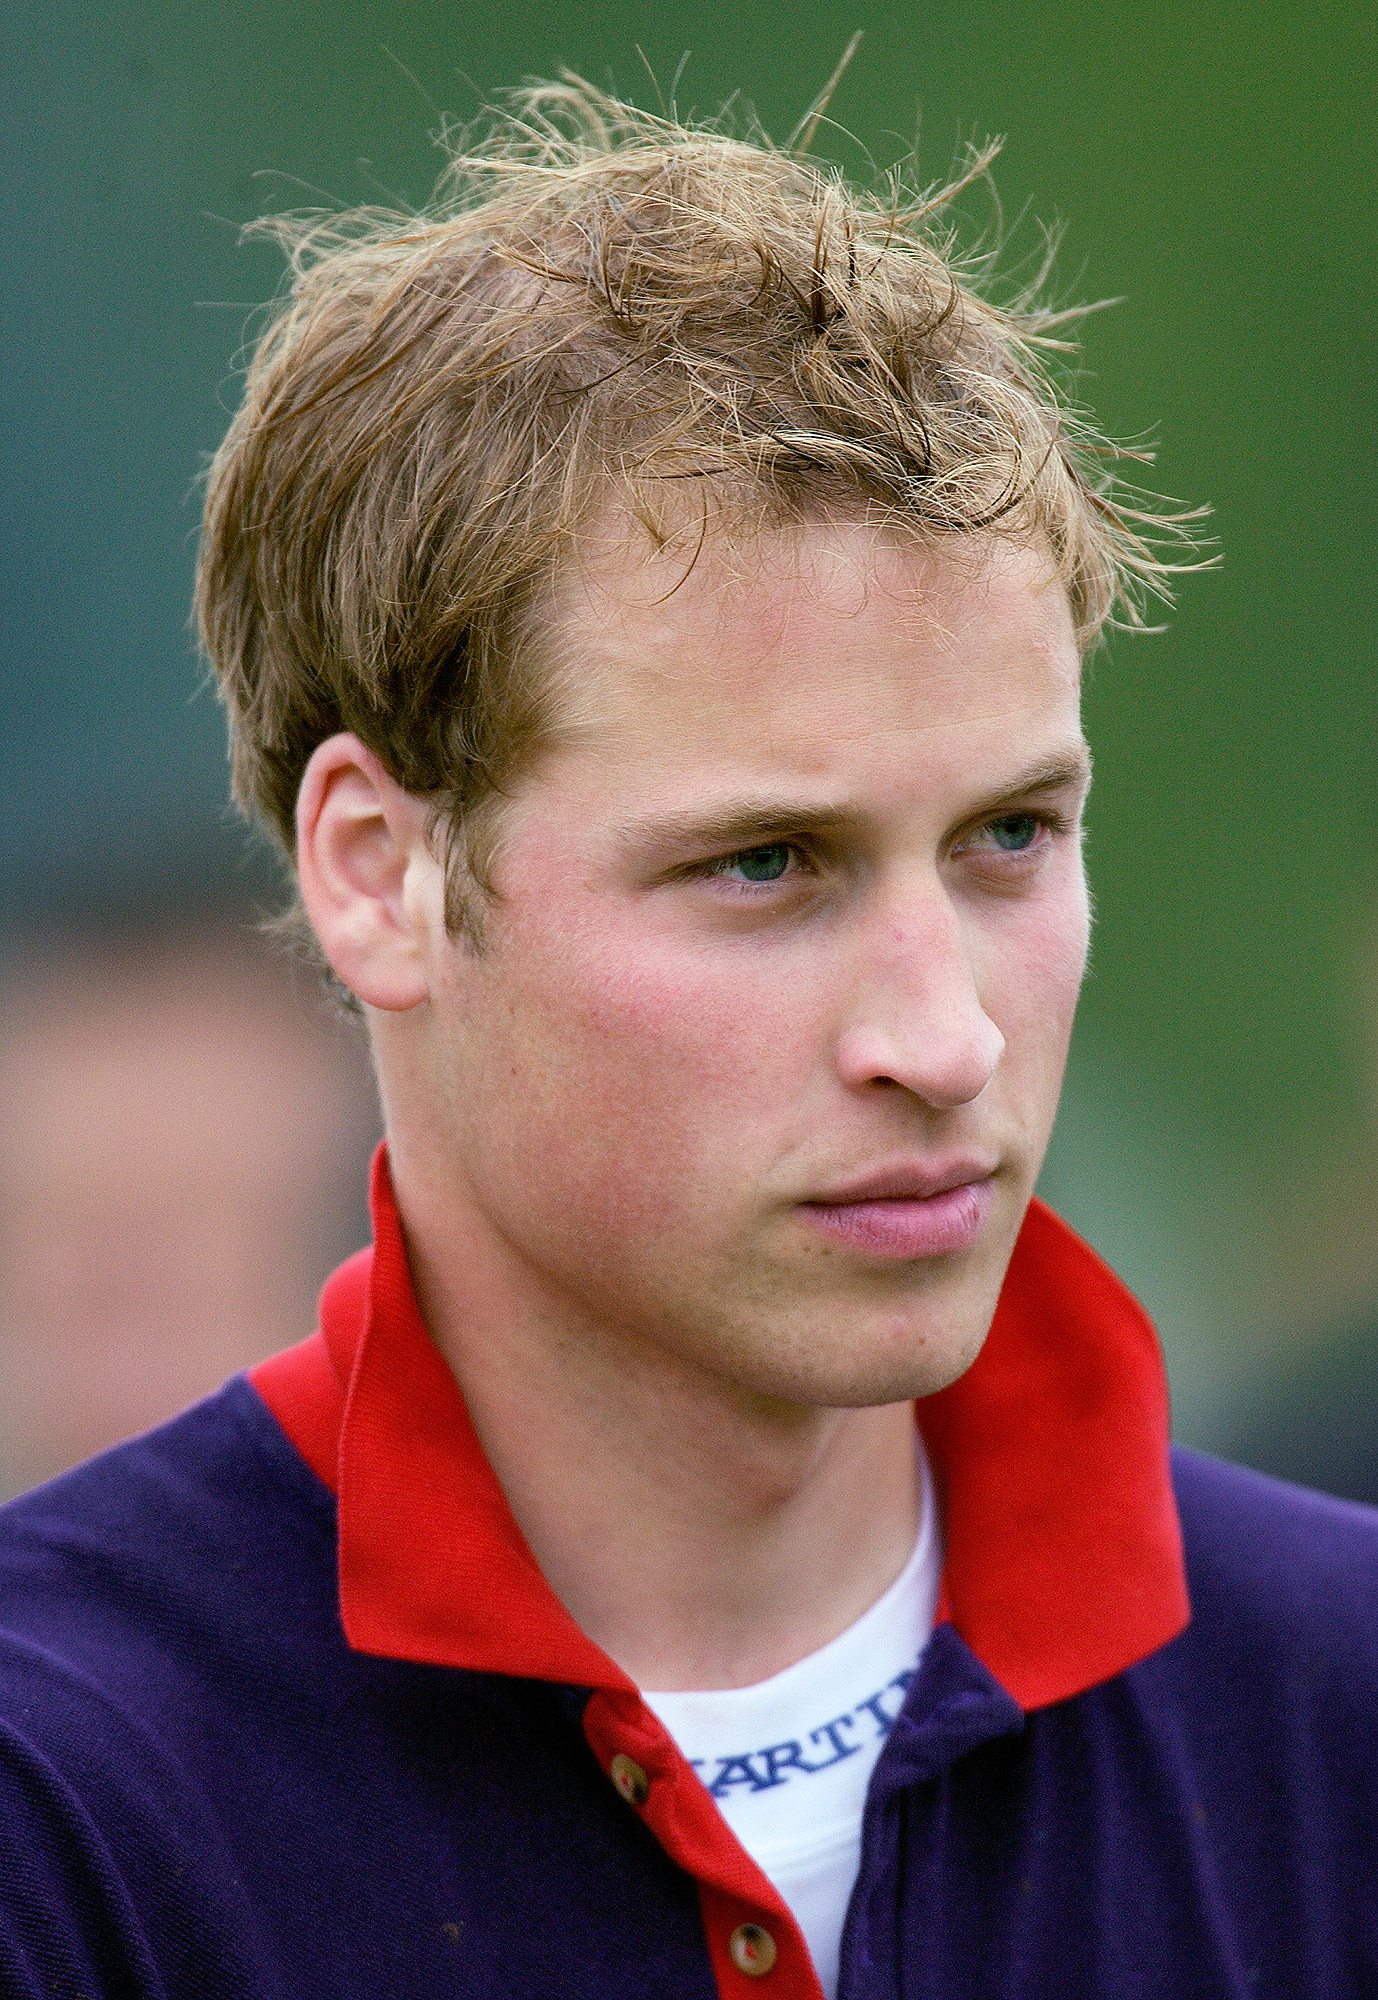 William At Cirencester